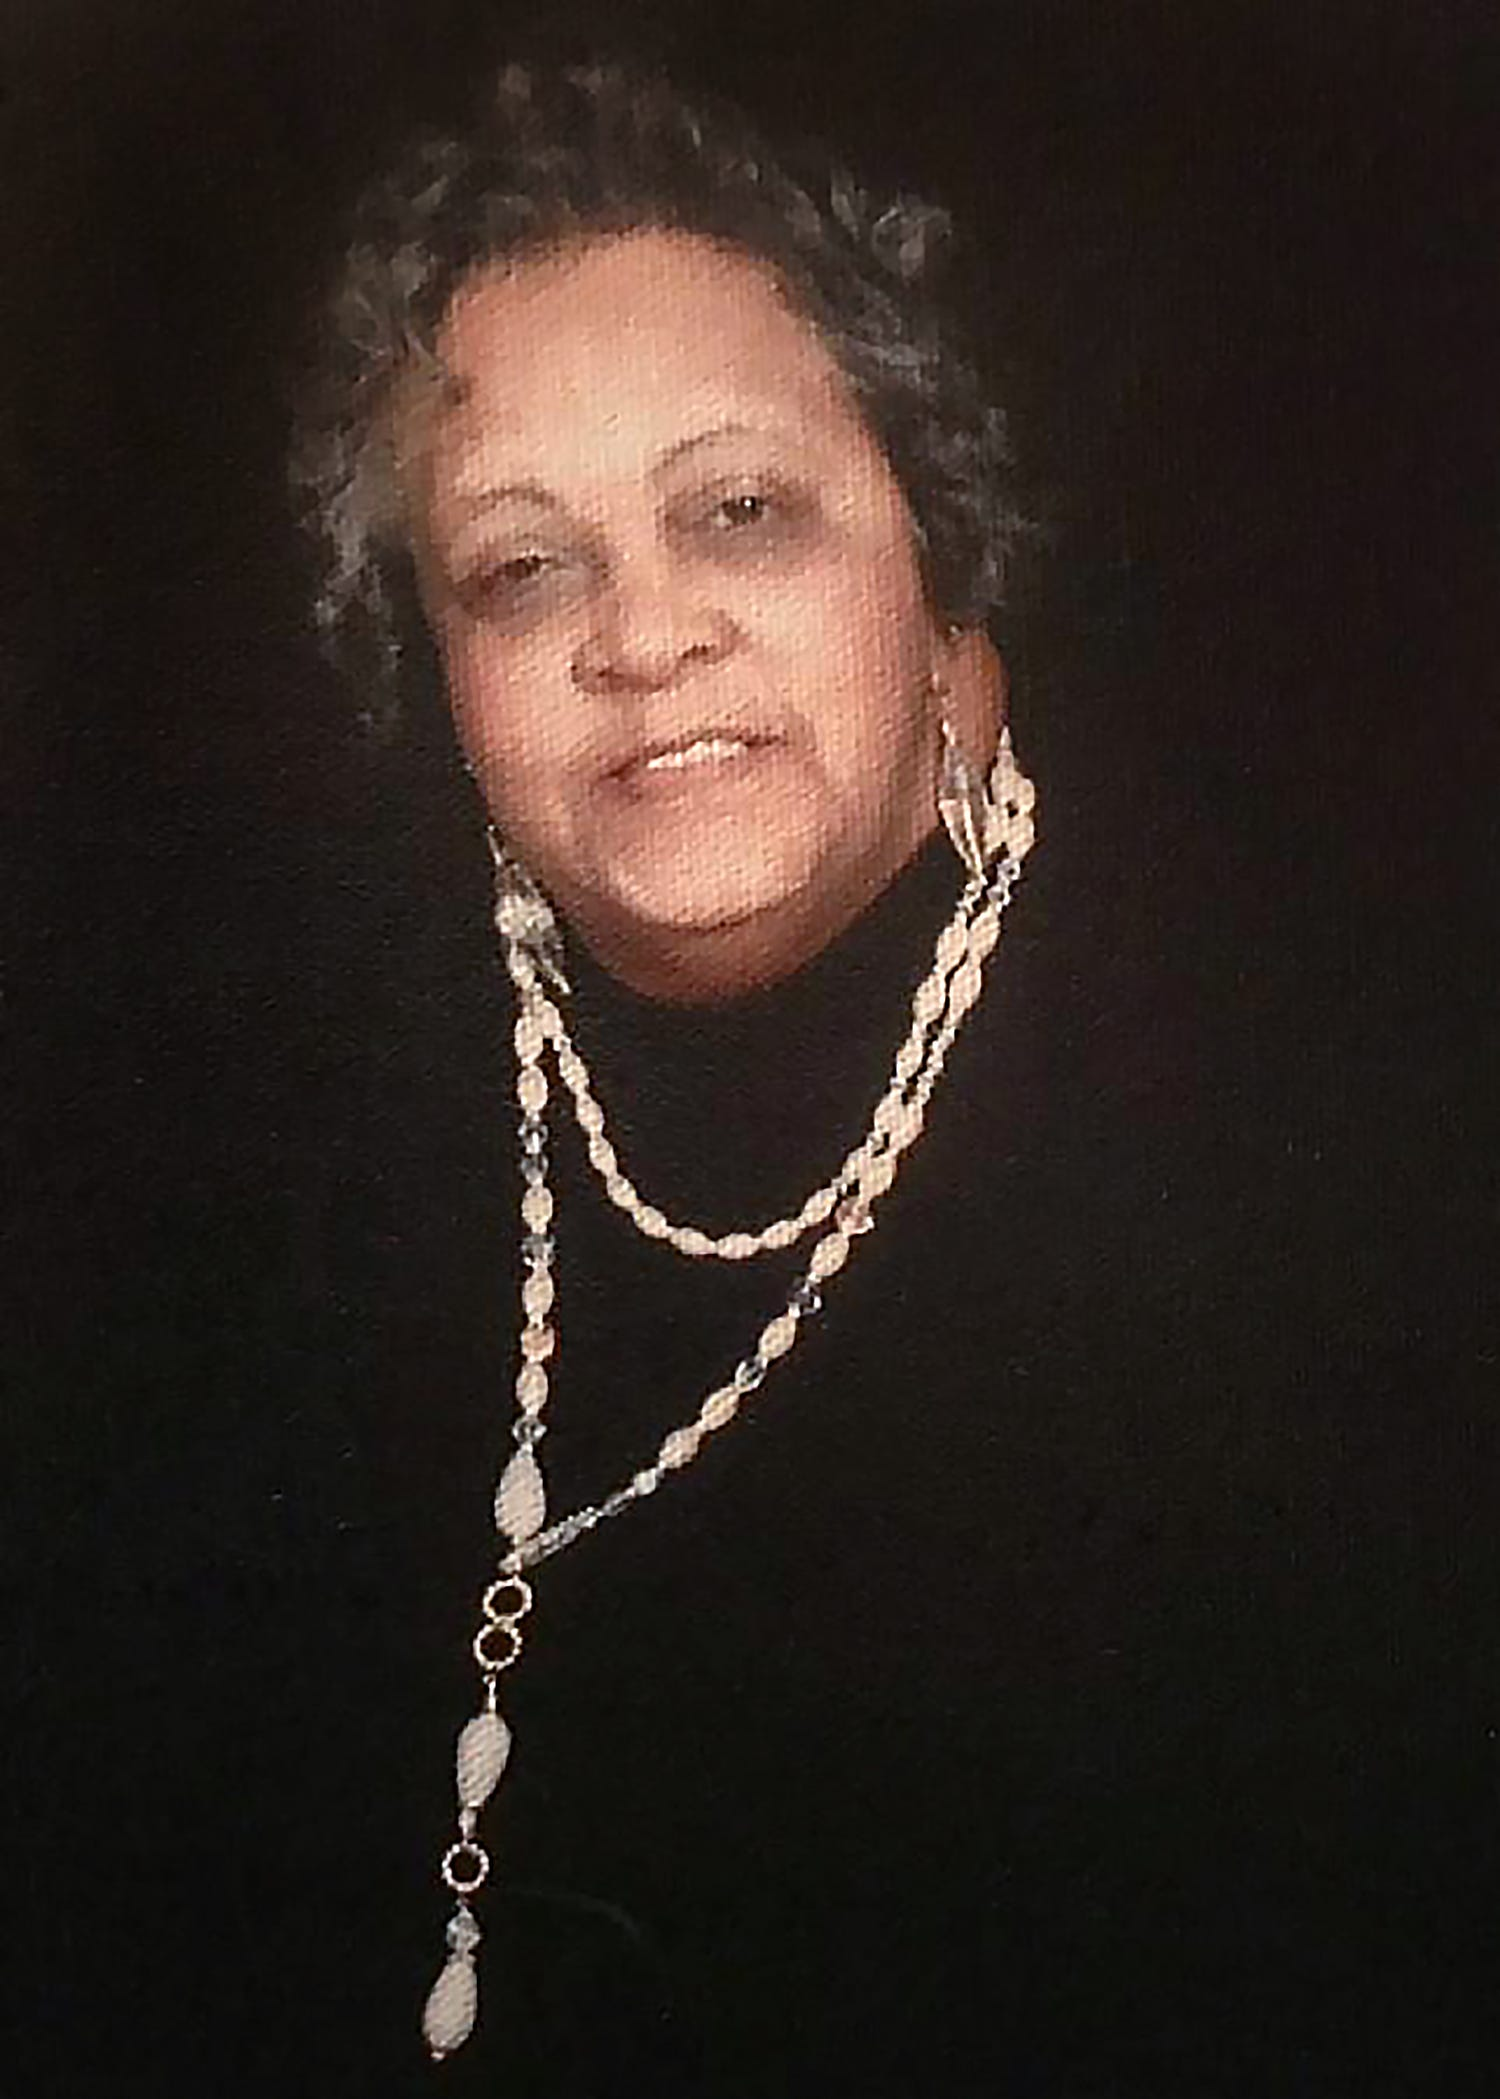 Pearlie Stokes, 79, died March 29, 2020 with COVID-19.